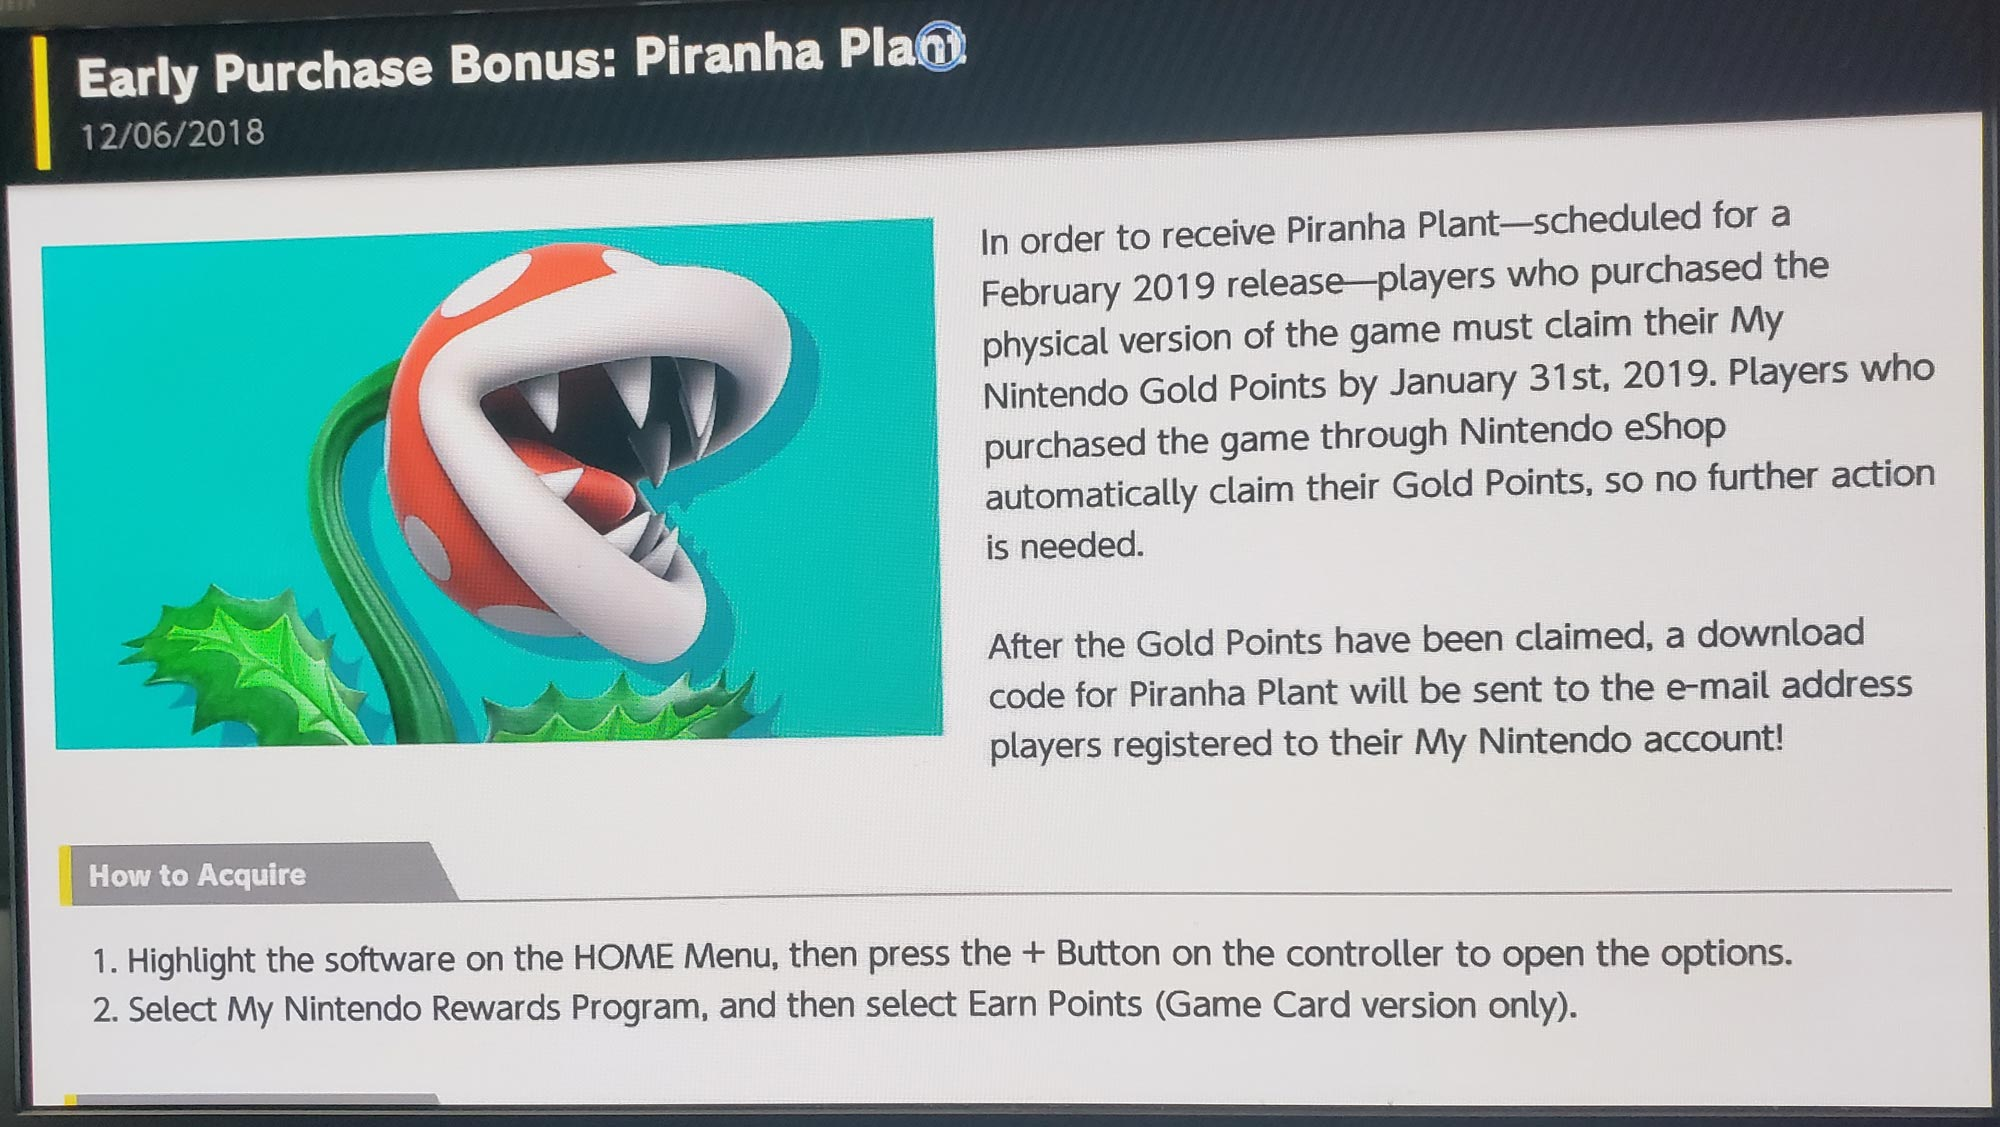 Piranha Plant Super Smash Bros. Ultimate prerequisite 3 out of 4 image gallery